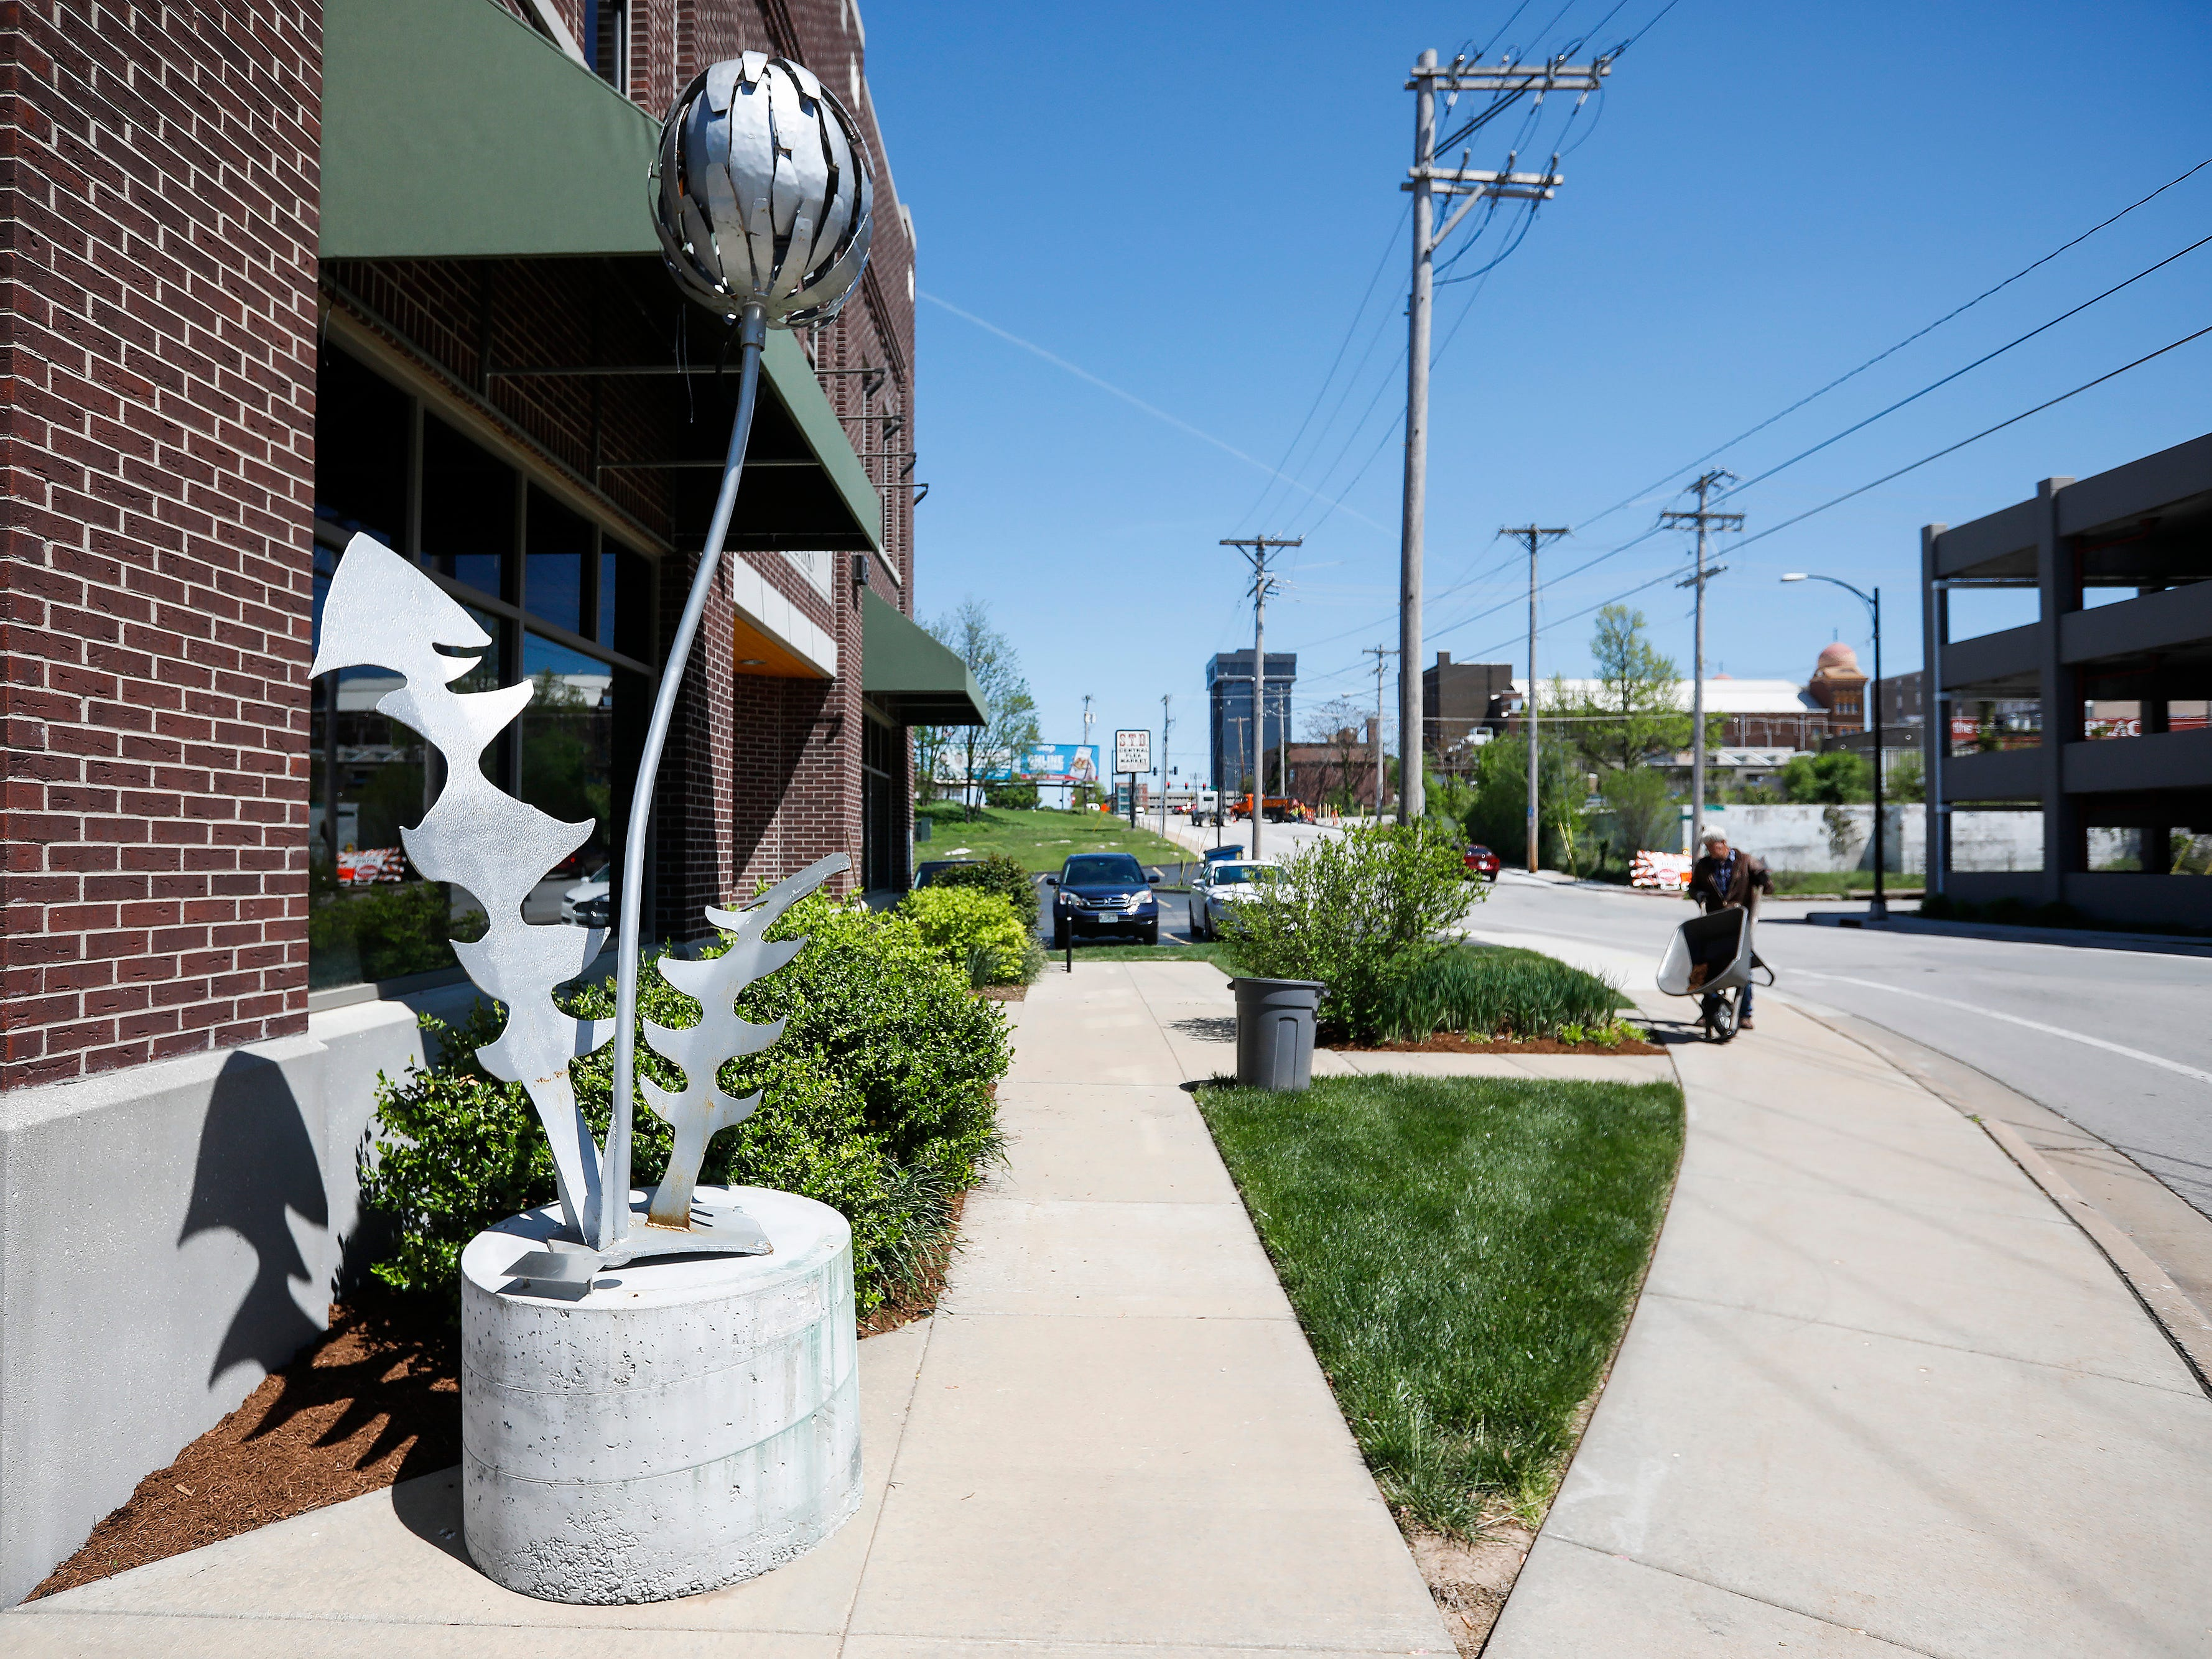 """Dandelion"" by Joe & Terry Malesky is located in front of the Community Foundation of the Ozarks on Trafficway."